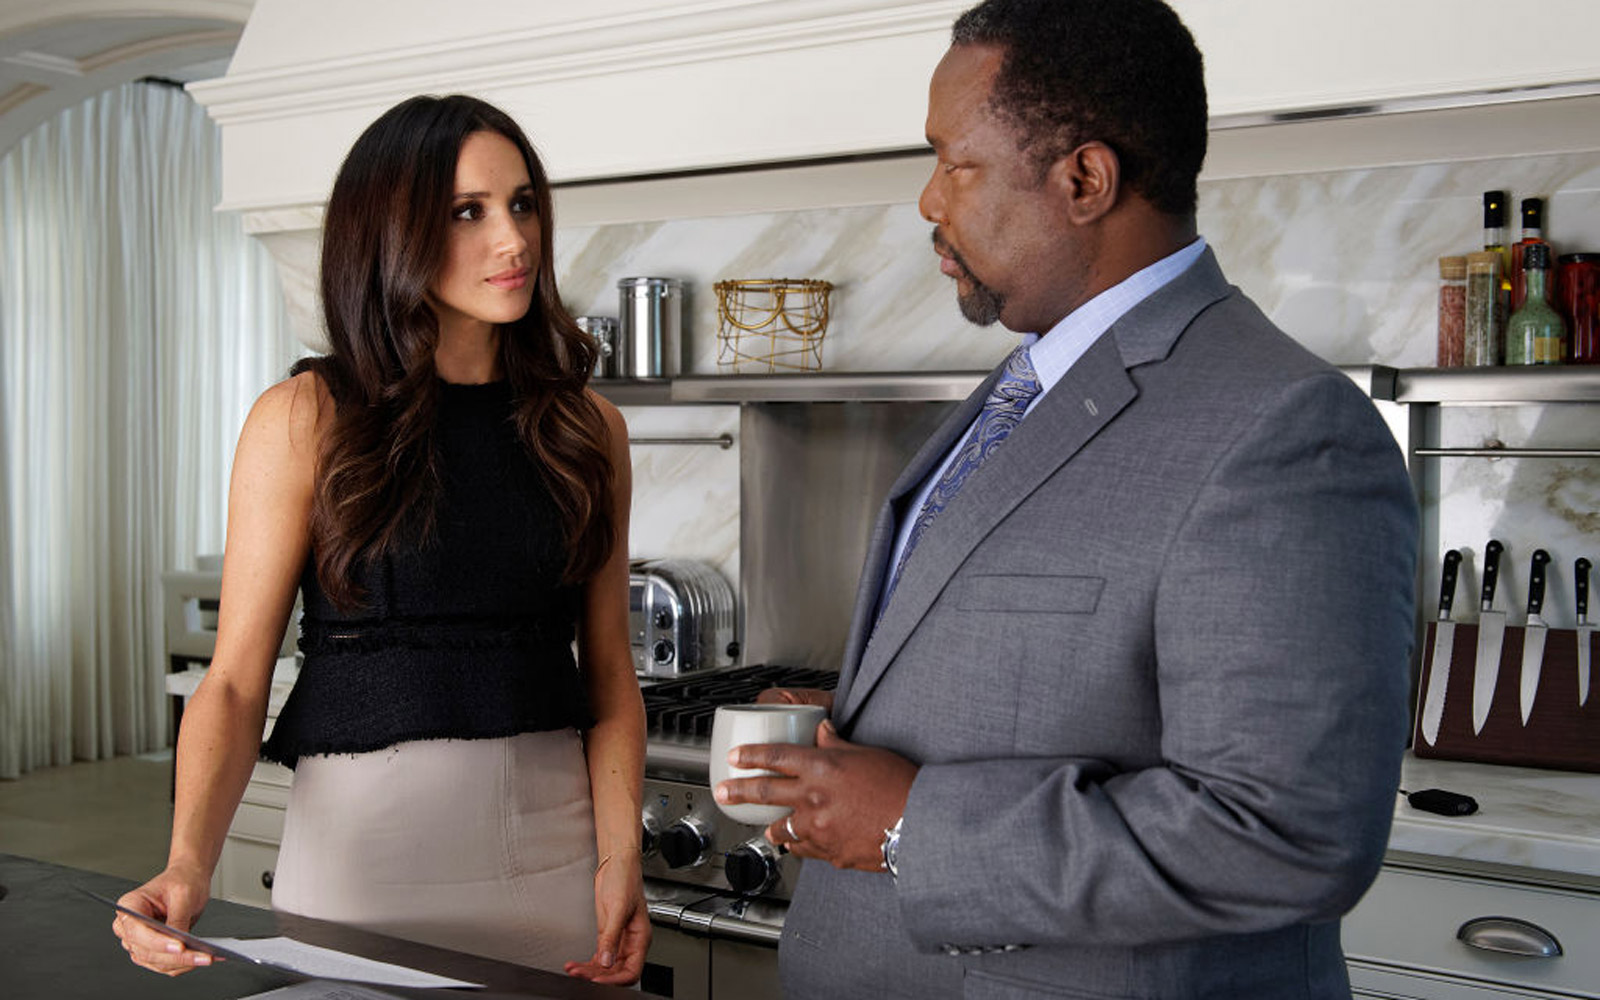 Meghan Markle Had a Secret Code Name for Prince Harry on the 'Suits' Set